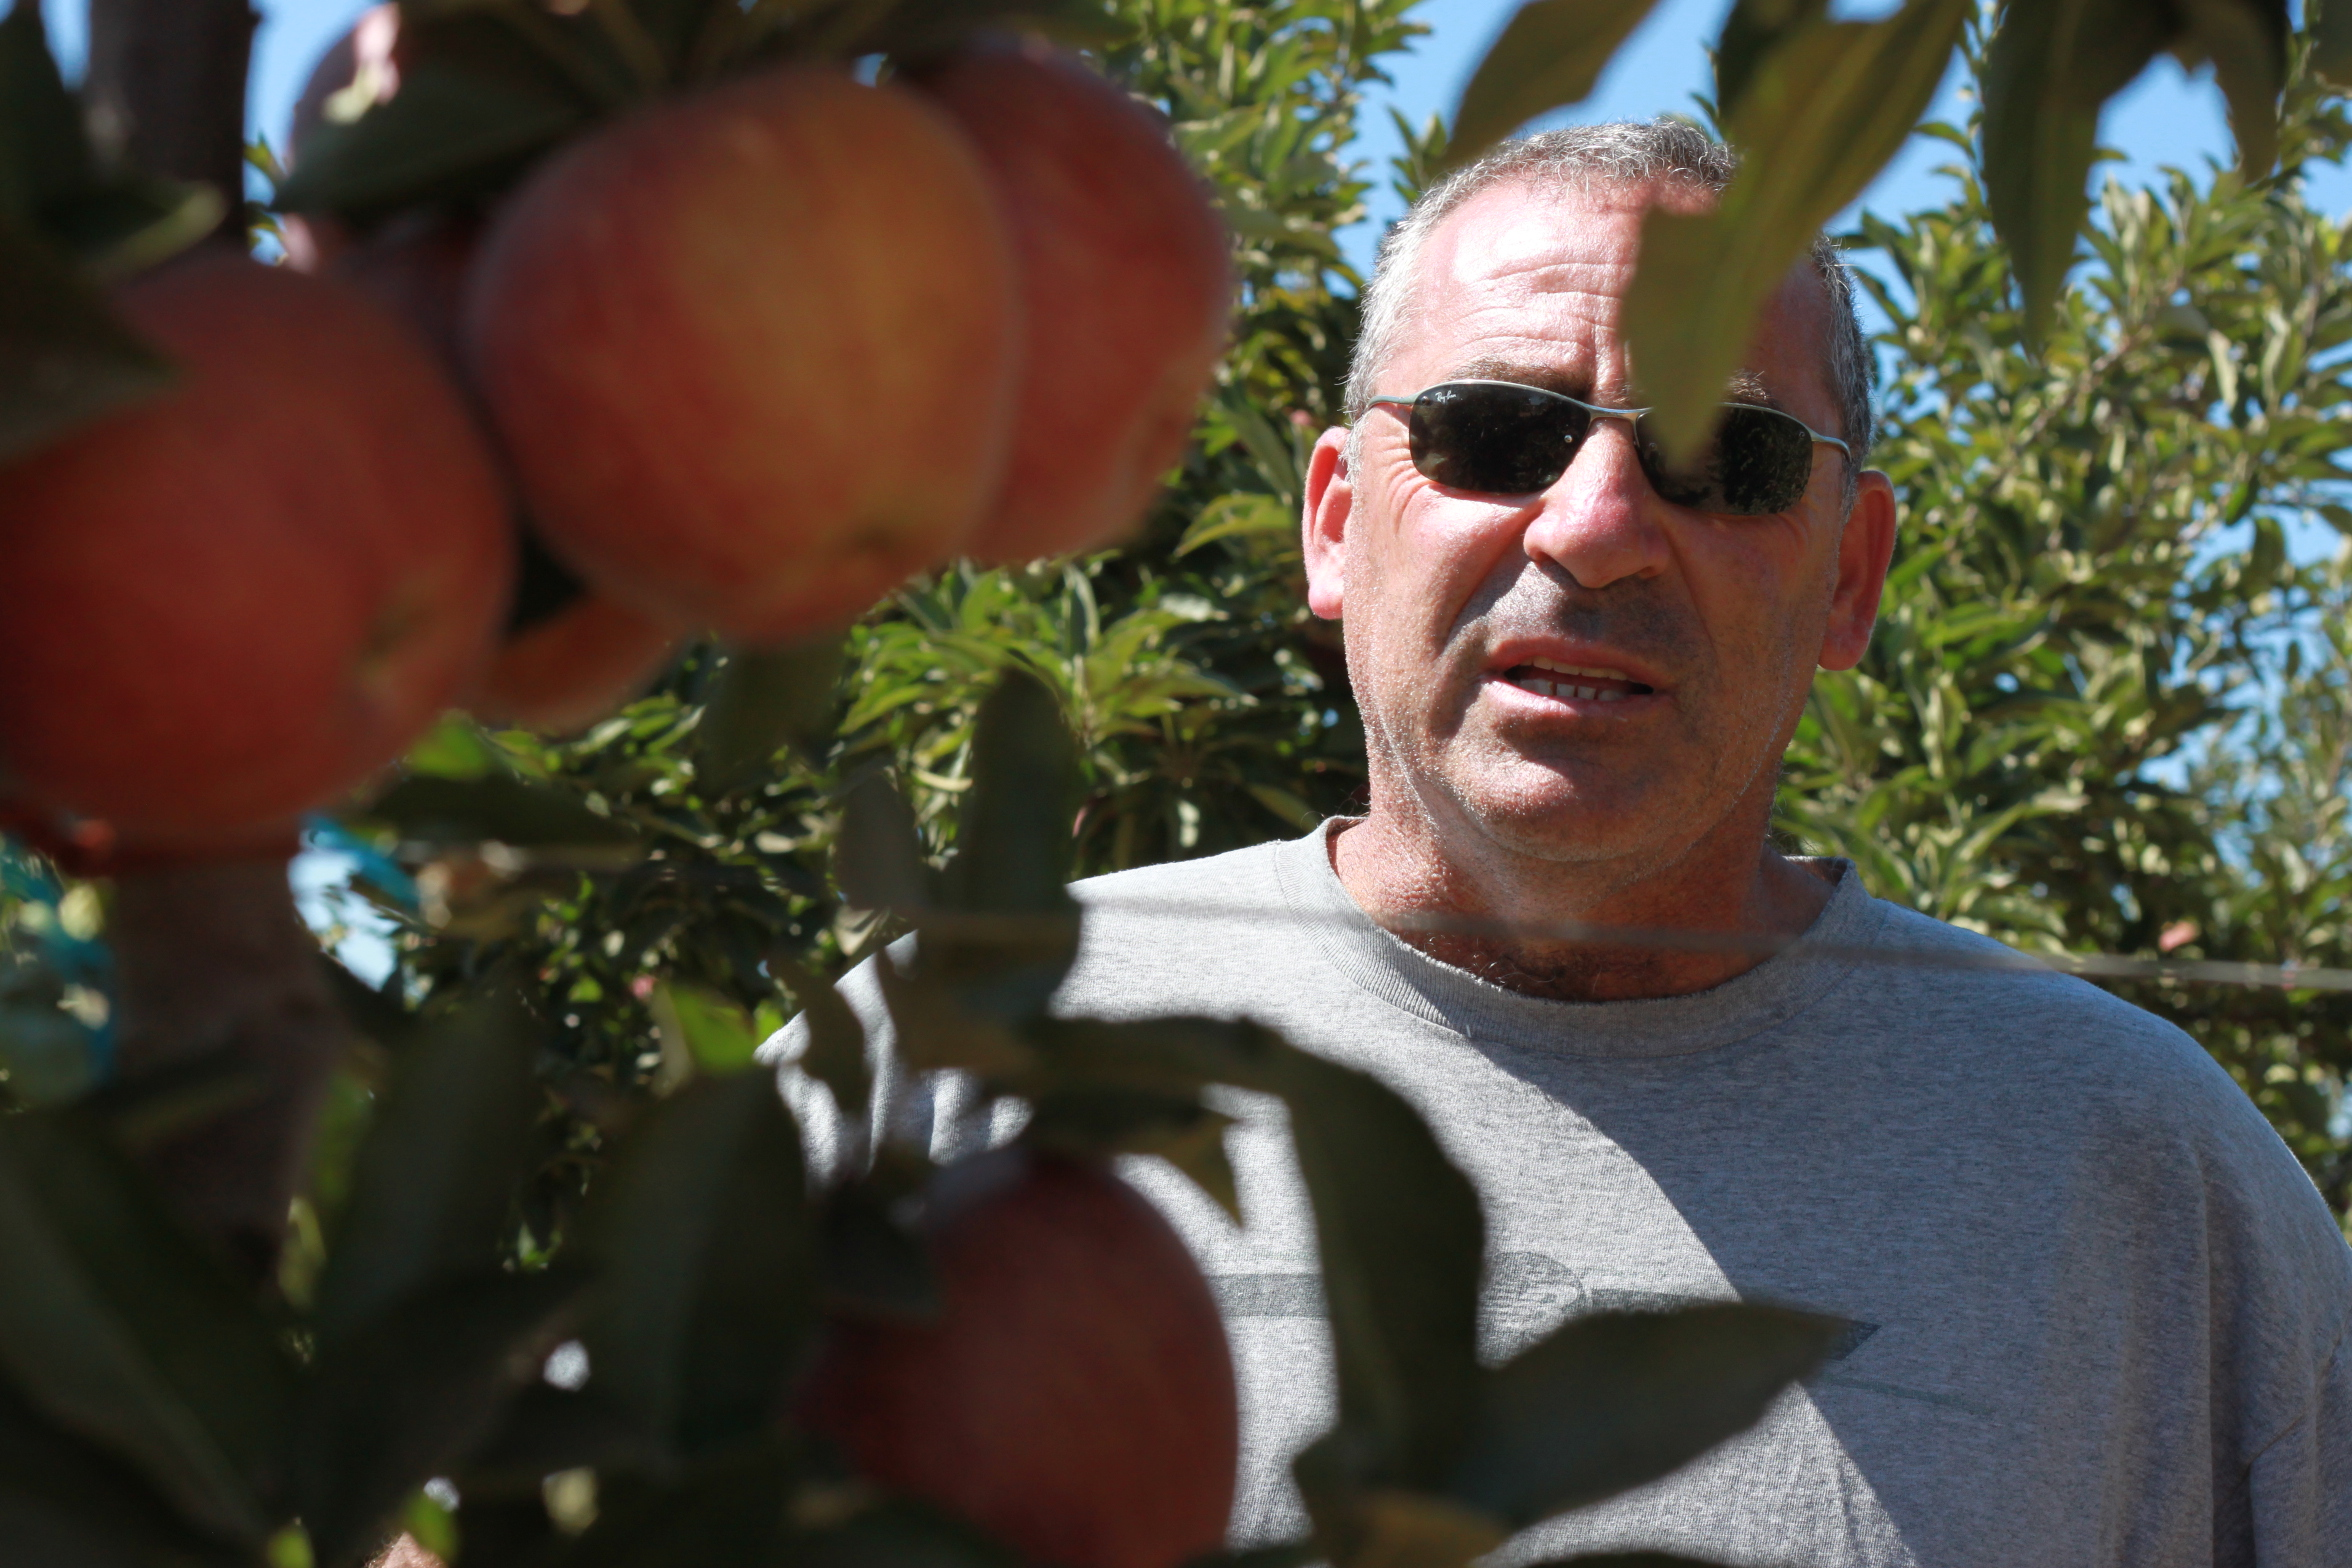 Gabi Kuniel in his orchard of Red Delicious apples, a few hundred feet away from the border fence.